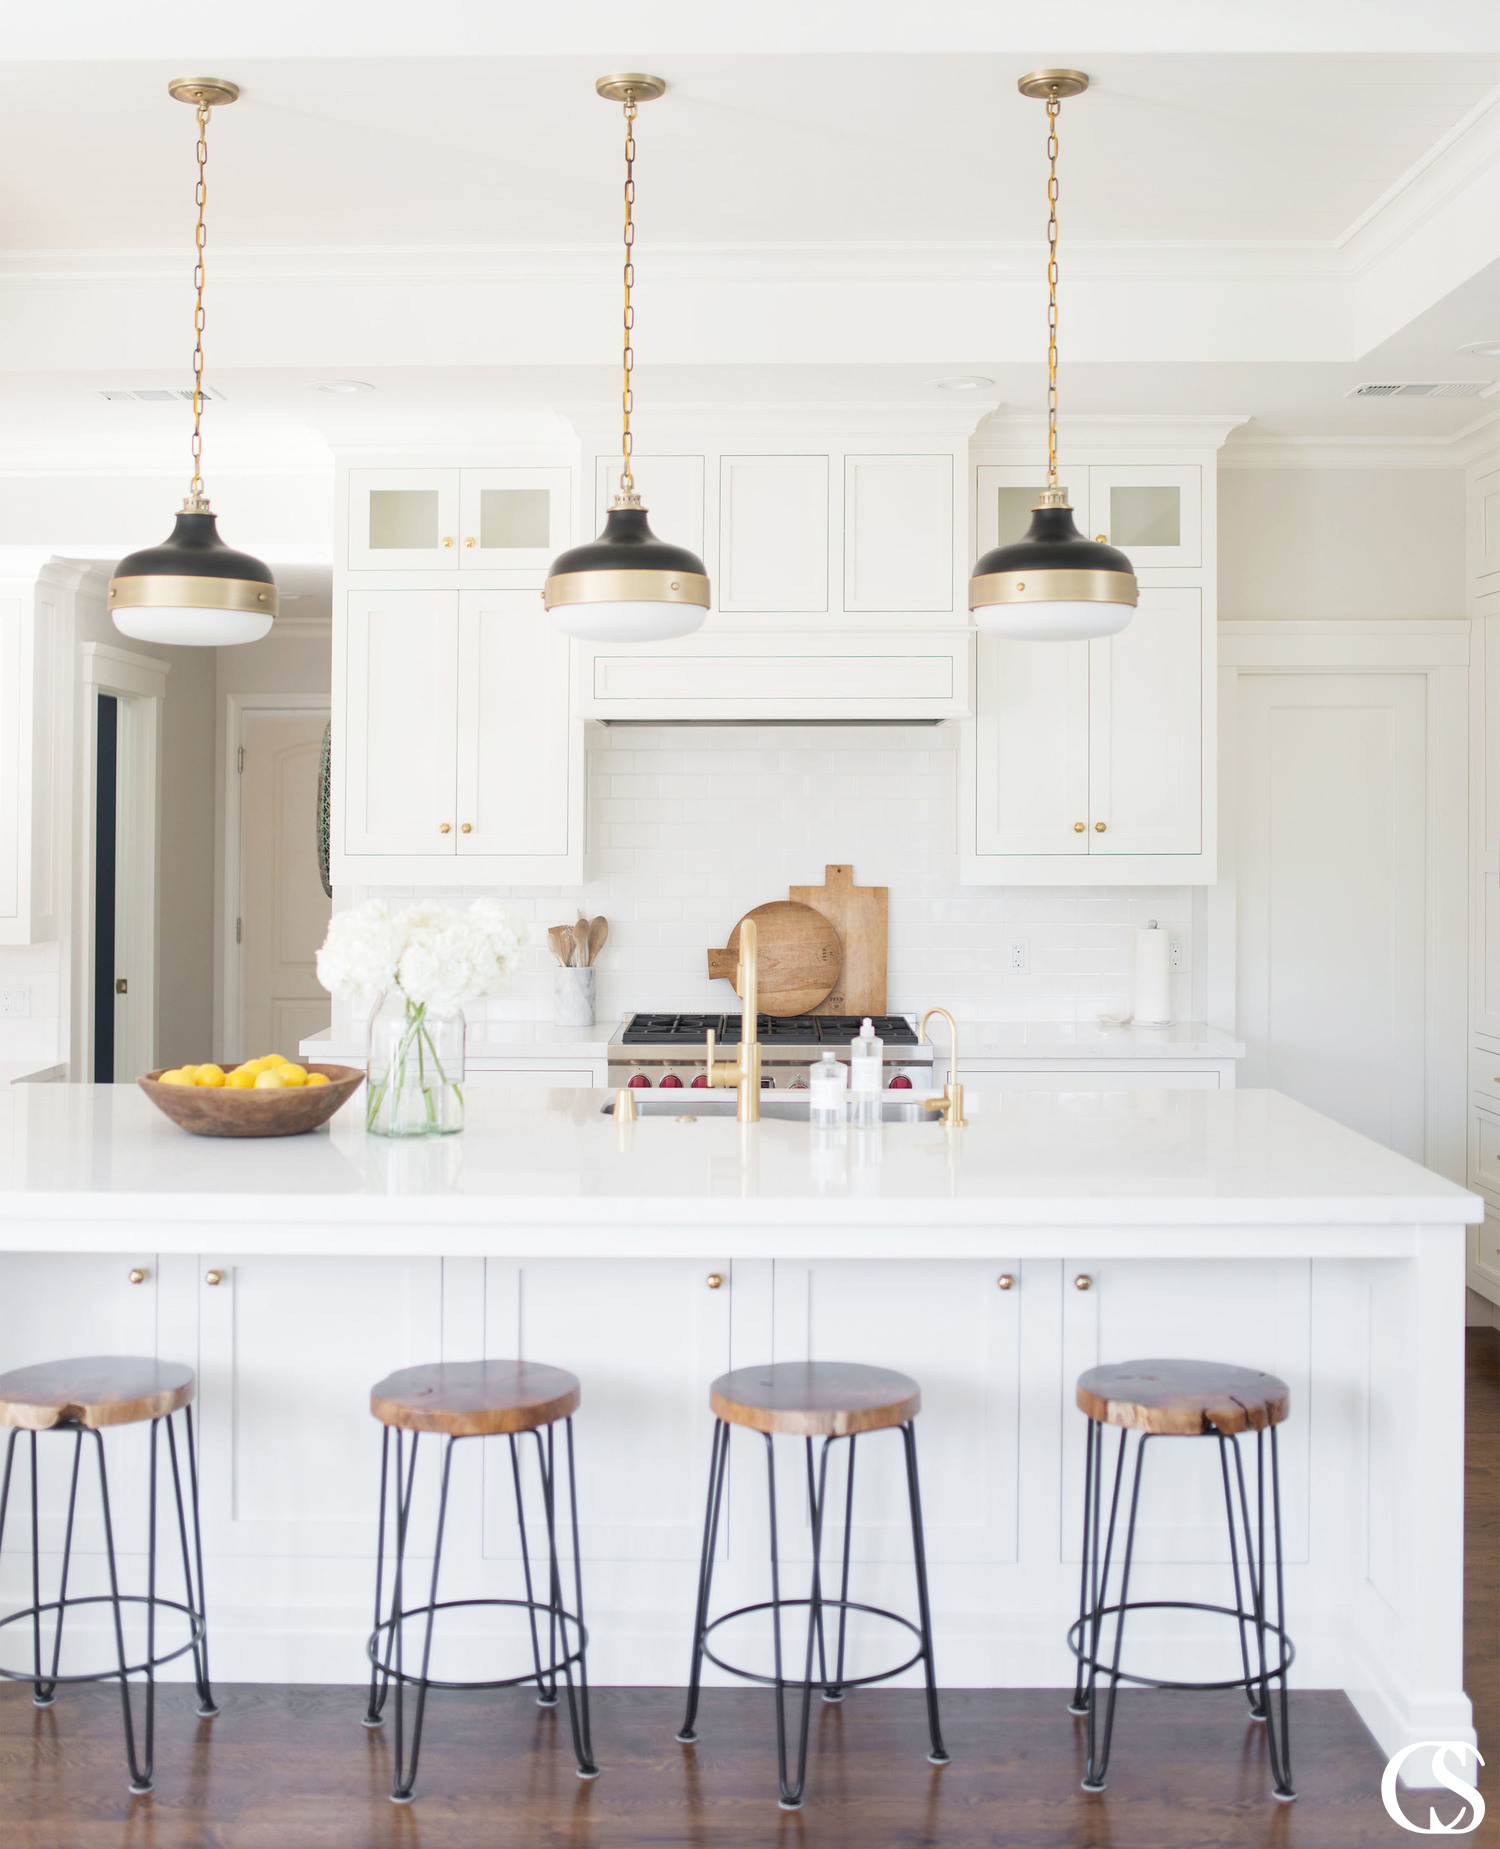 One of the great things about custom white kitchen cabinets is that they can hide more than you might think. Like this custom kitchen island for example—the perfect shade of white paint for the kitchen helps disguise extra storage in front of bar stools.